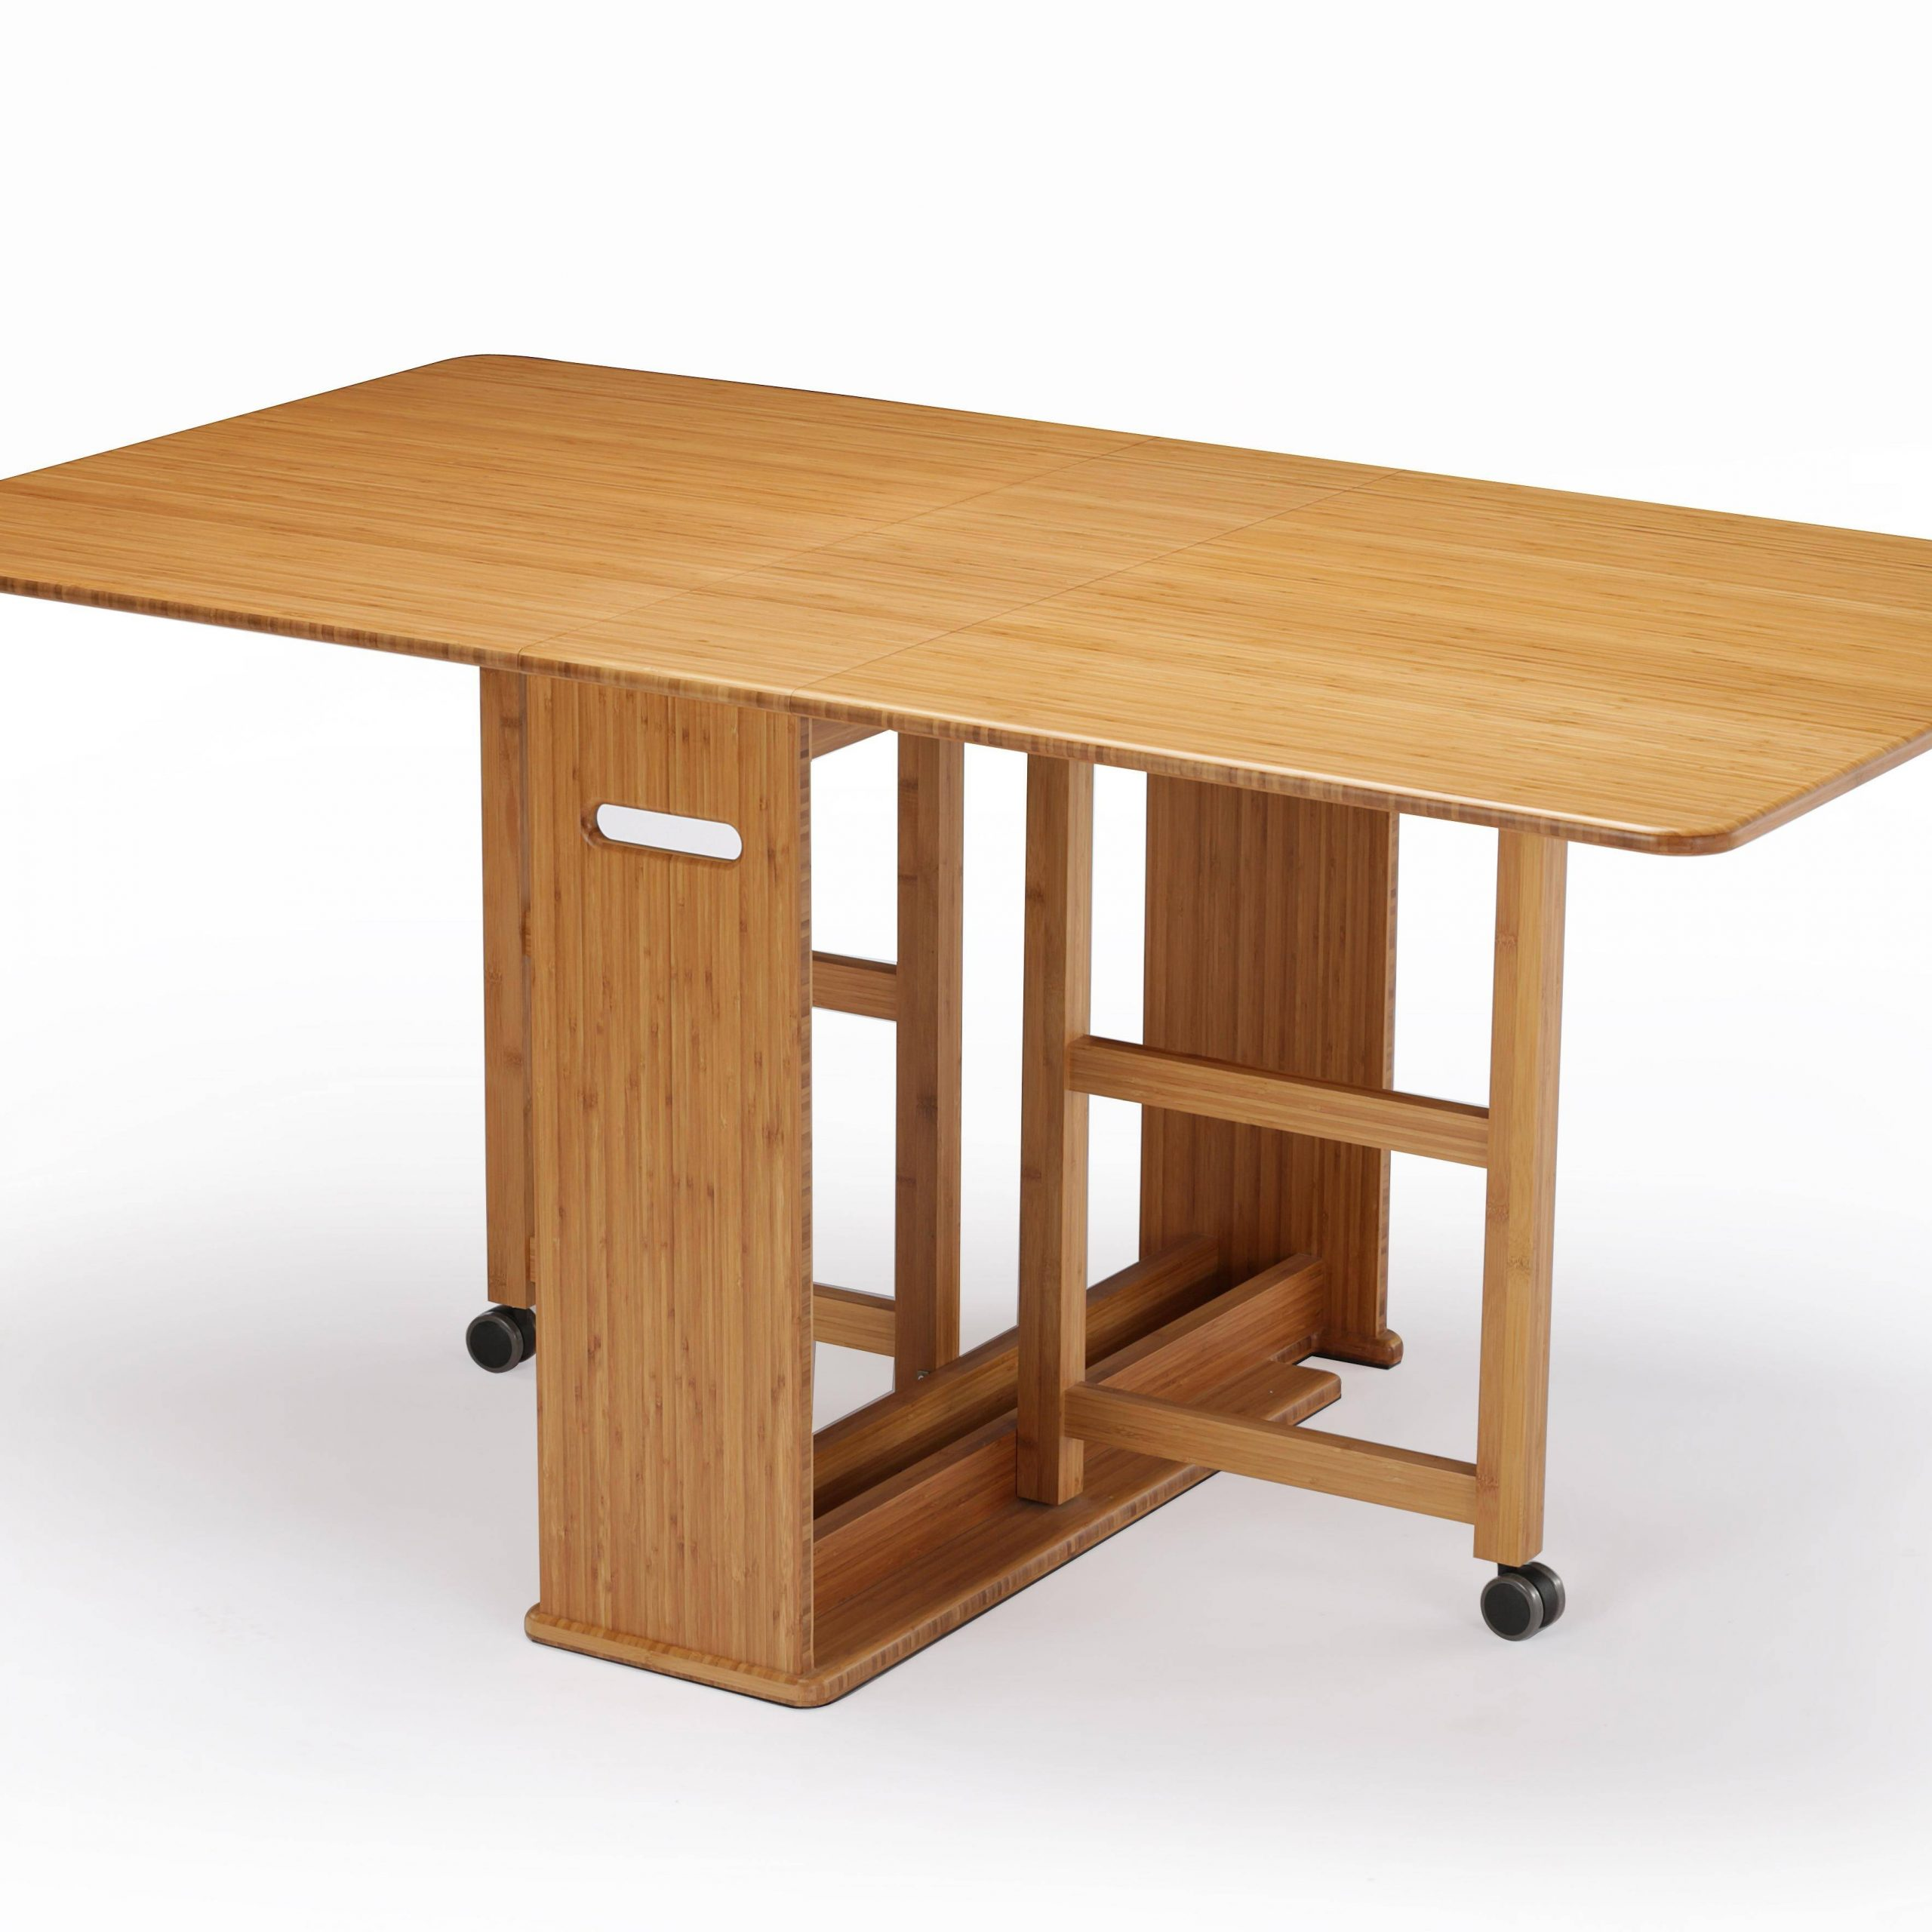 Most Popular Greenington Linden Dining Table In Caramelized, Wood With Linden Round Pedestal Dining Tables (View 13 of 25)